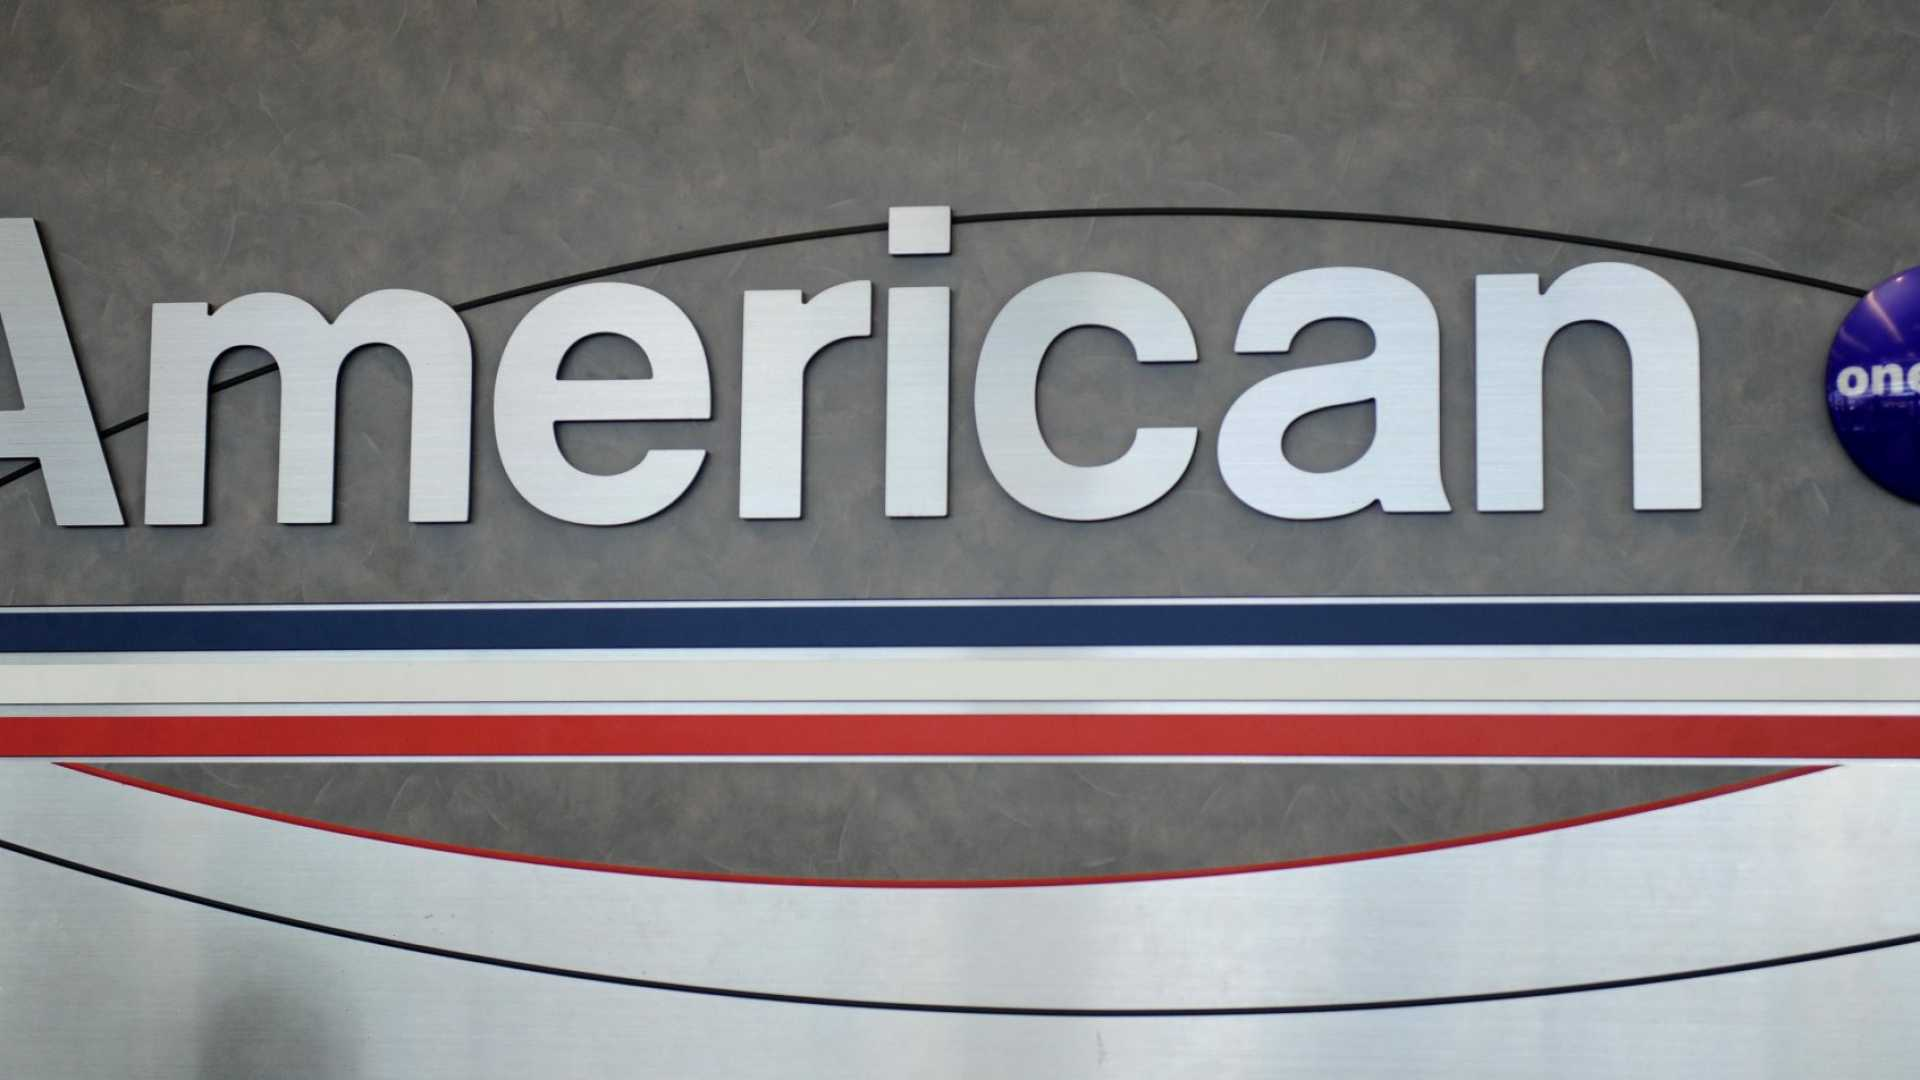 How an American Airlines Employee Saved Two Teenage Girls From a Very Bad Man